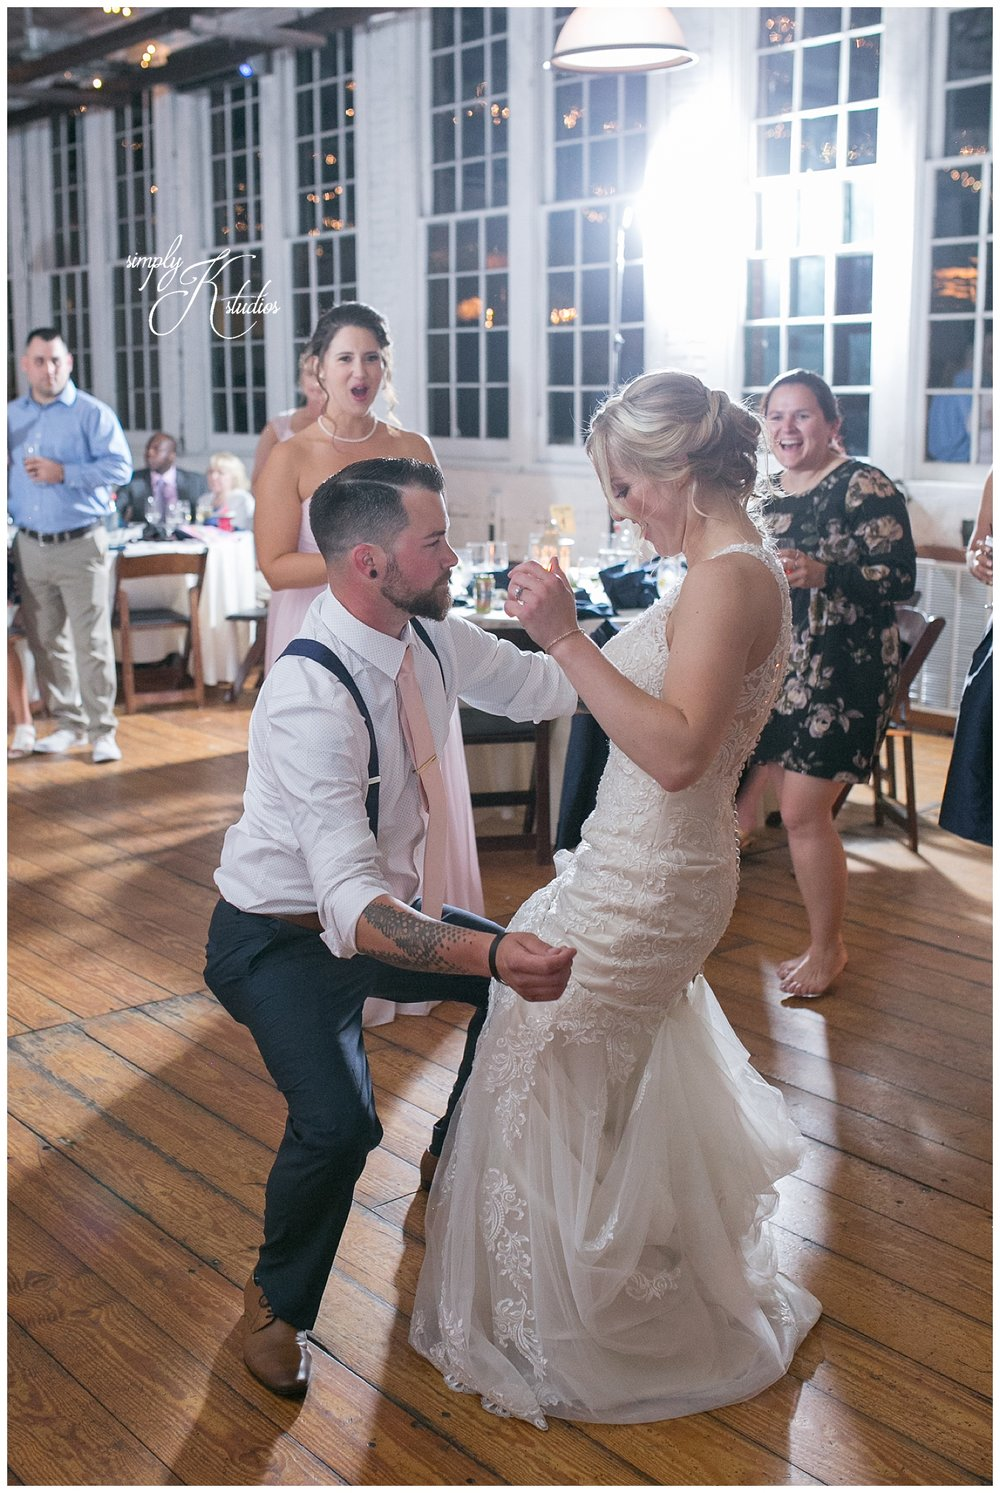 Bride and Groom Dancing.jpg